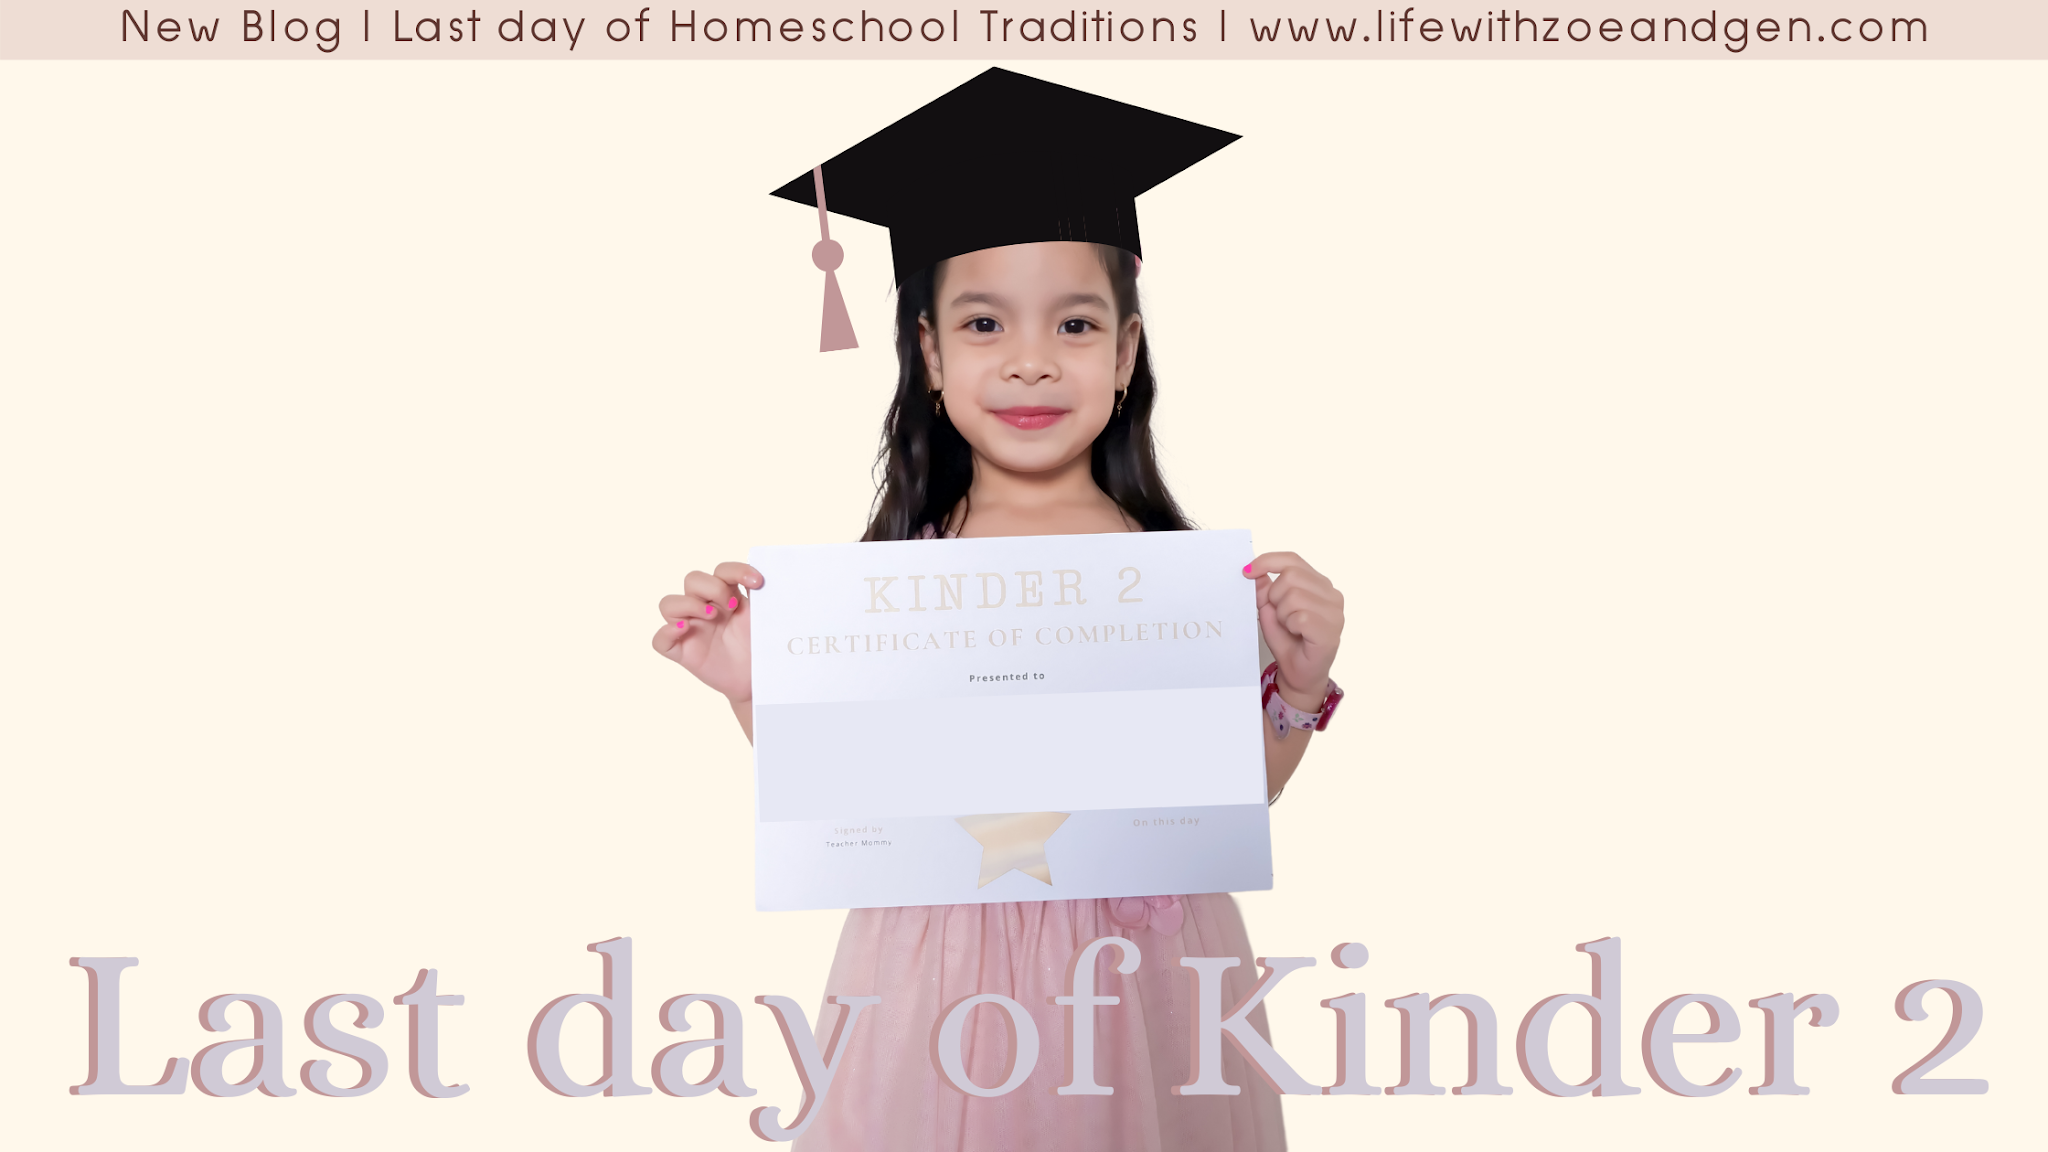 5 Last day of Homeschool Traditions l Life with ZG l Homeschooling Philippines l Gen Roraldo